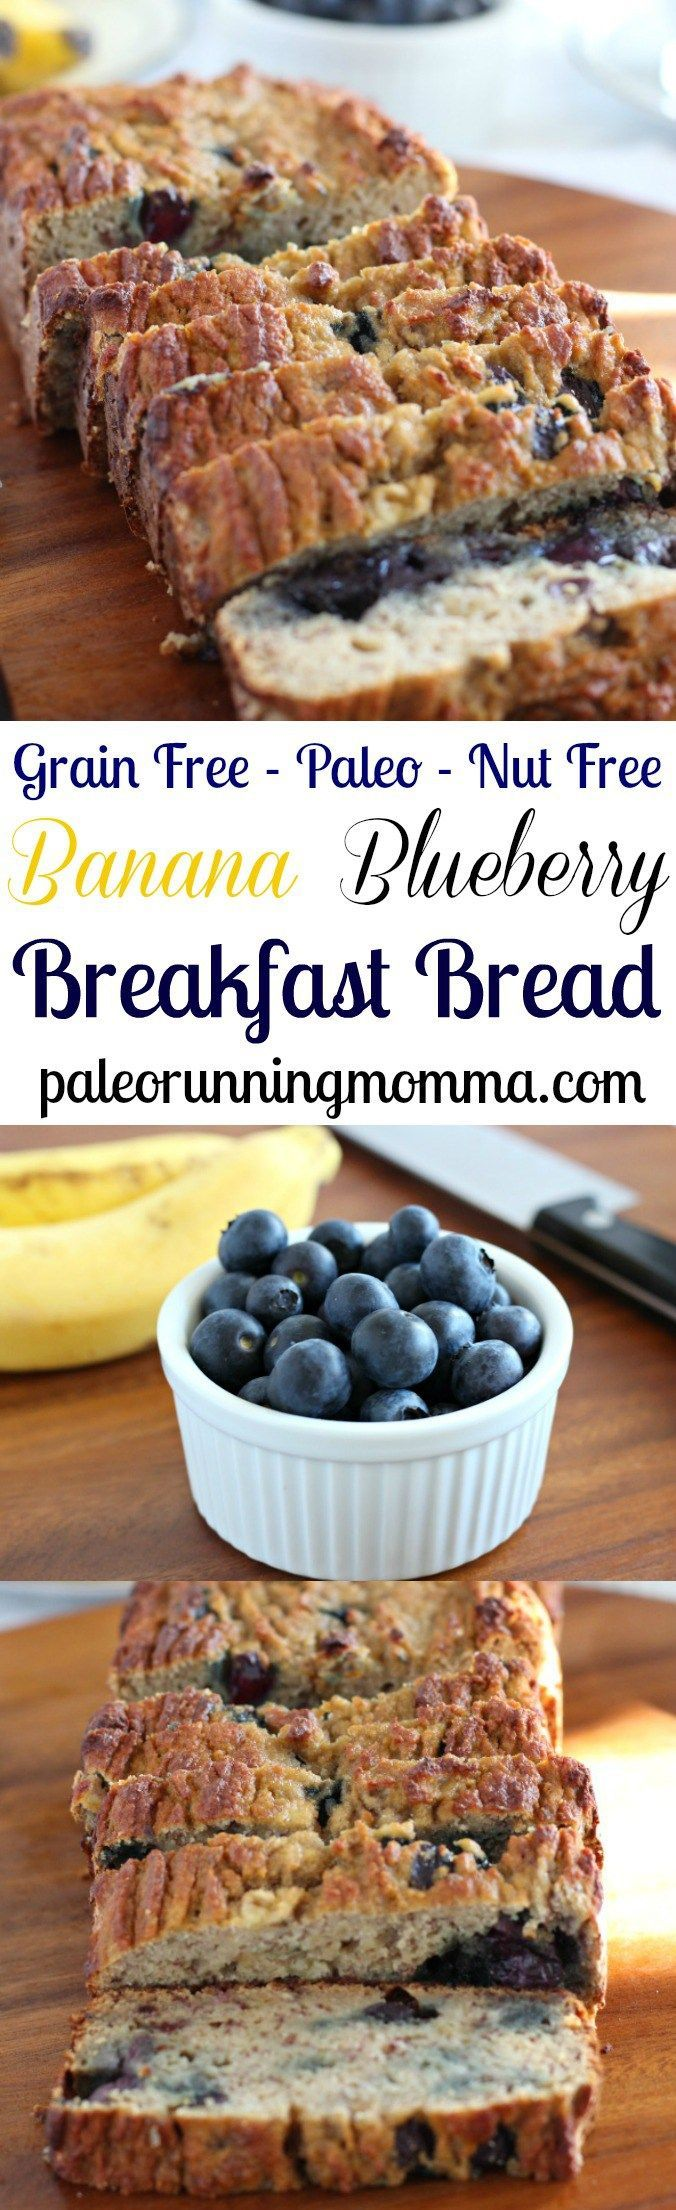 Gluten free and Paleo Banana Blueberry Breakfast Bread that's perfectly soft and moist with lots of natural sweetness! #paleo #grainfree #nutfree #glutenfree #lowFODMAP http://www.paleorunningmomma.com/banana-blueberry-breakfast-bread-paleo-nut-free/